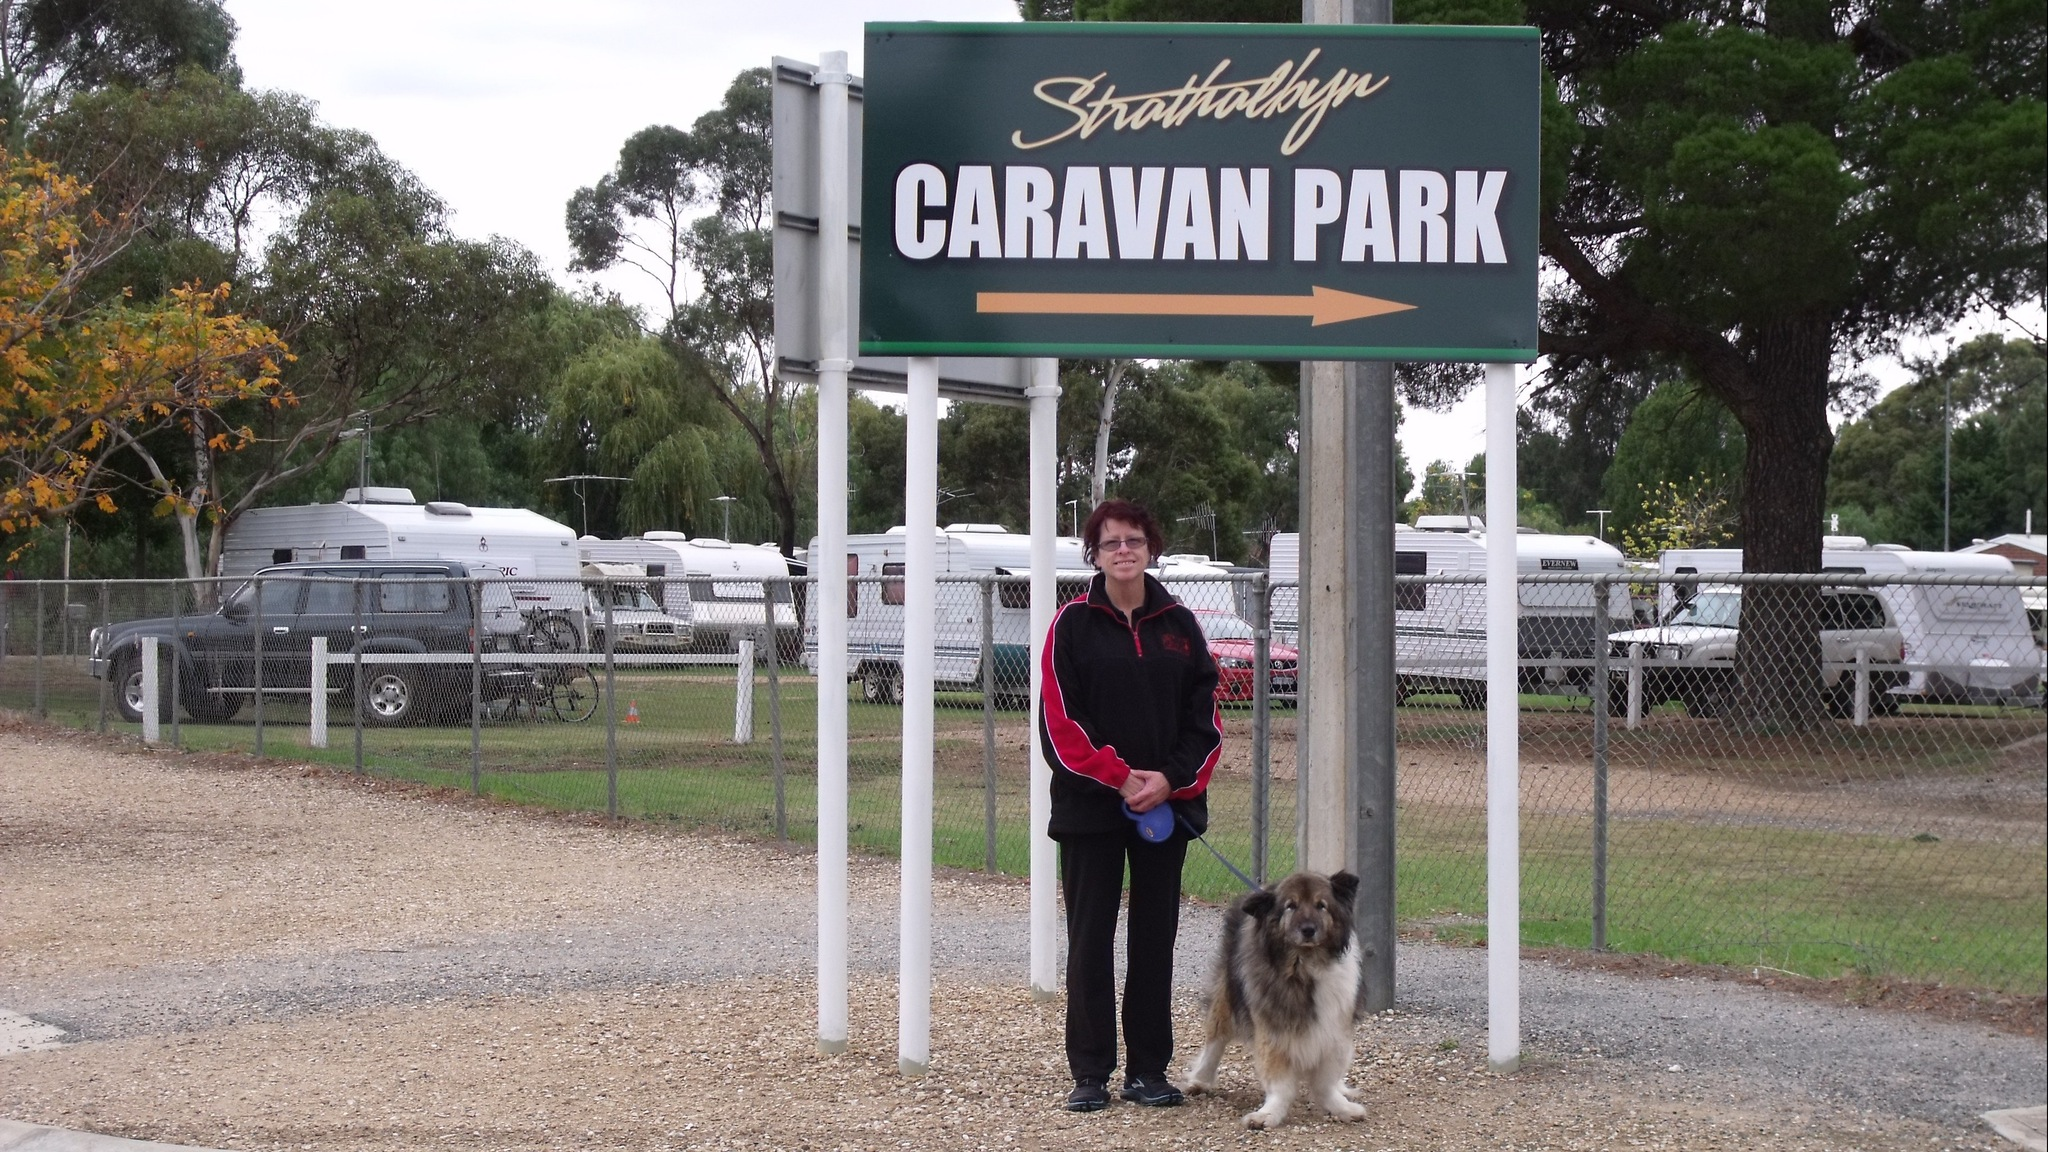 Strathalbyn Caravan Park - New South Wales Tourism